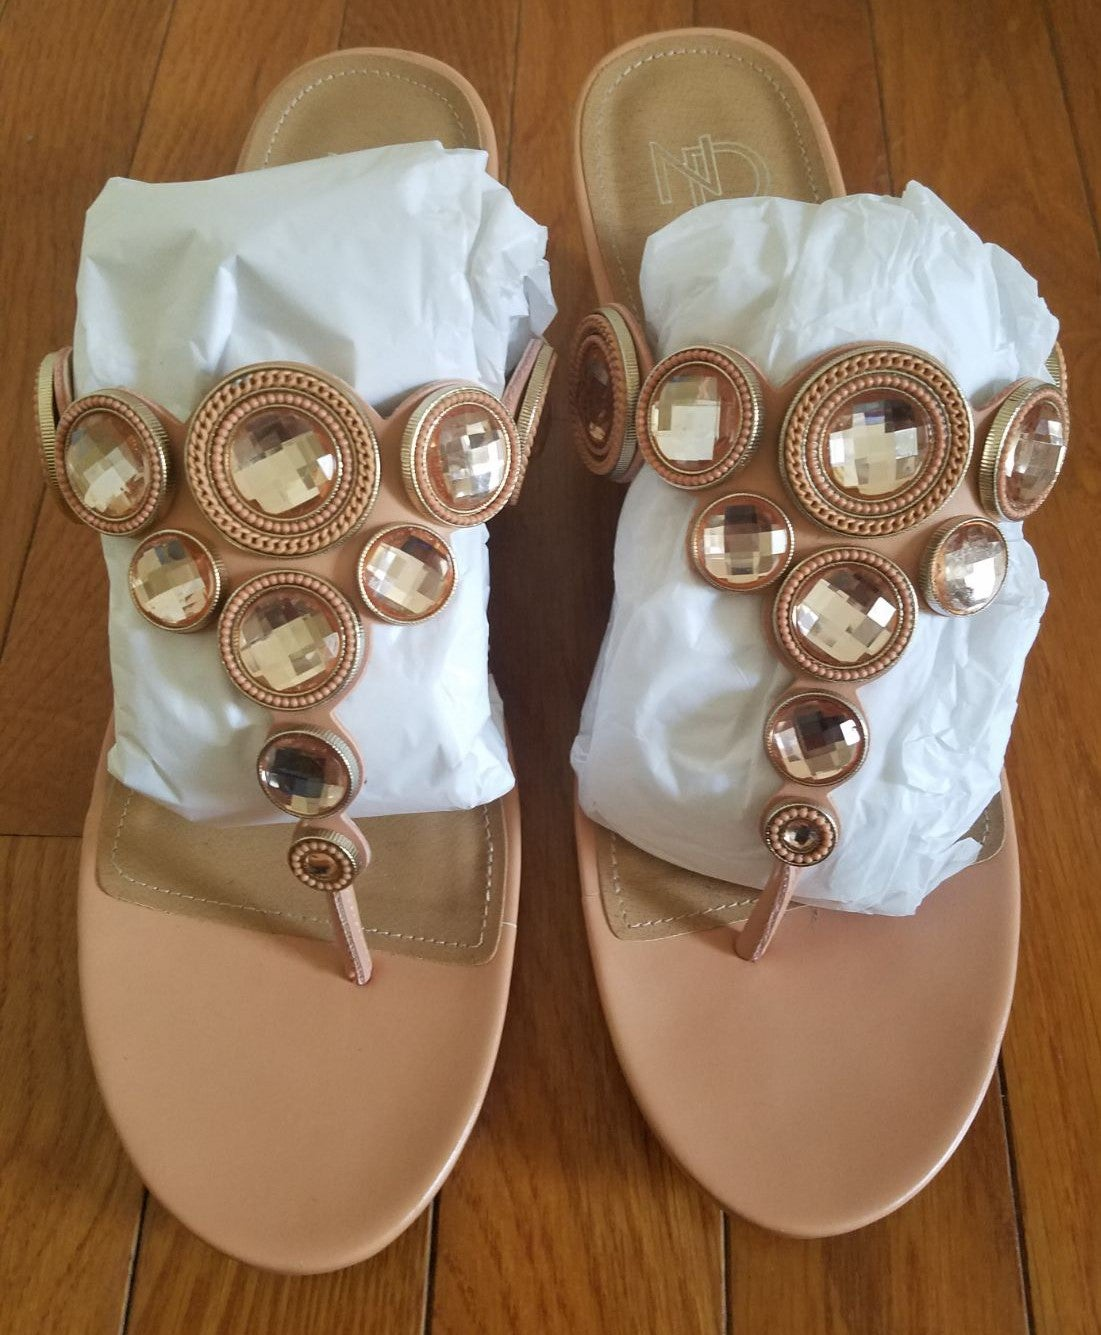 ND NEW DIRECTIONS SANDALS Size 9.5